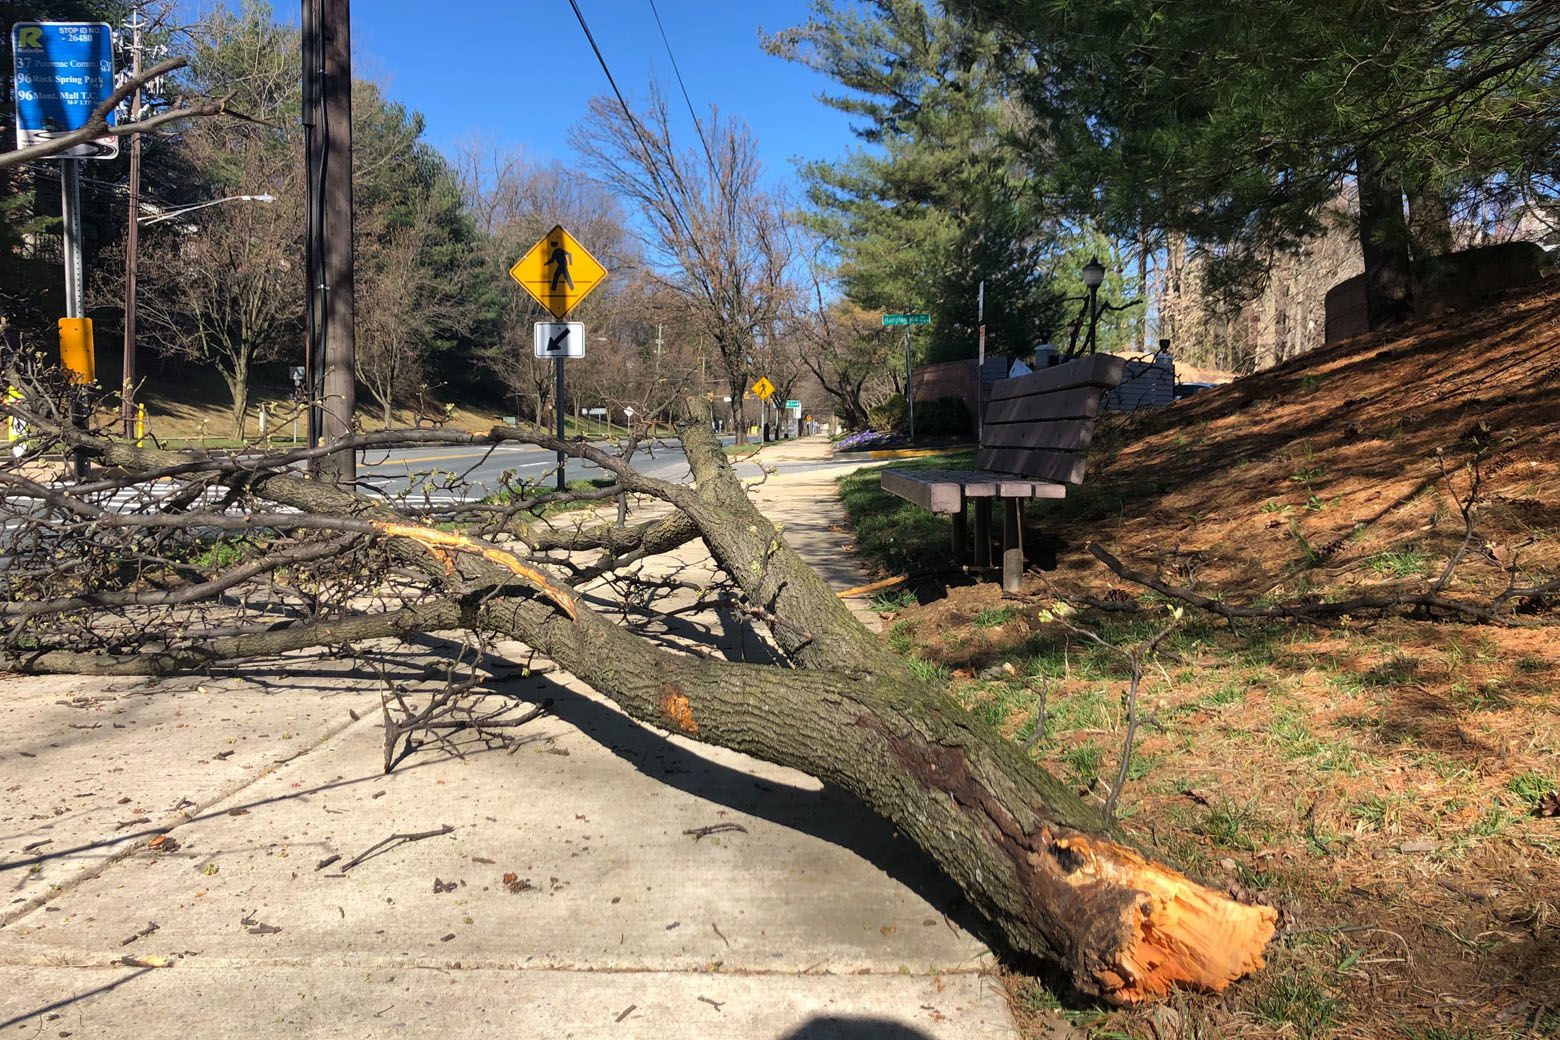 A person walking in North Bethesda, Maryland, was seriously injured Tuesday morning by a falling tree branch. (WTOP/Melissa Howell)